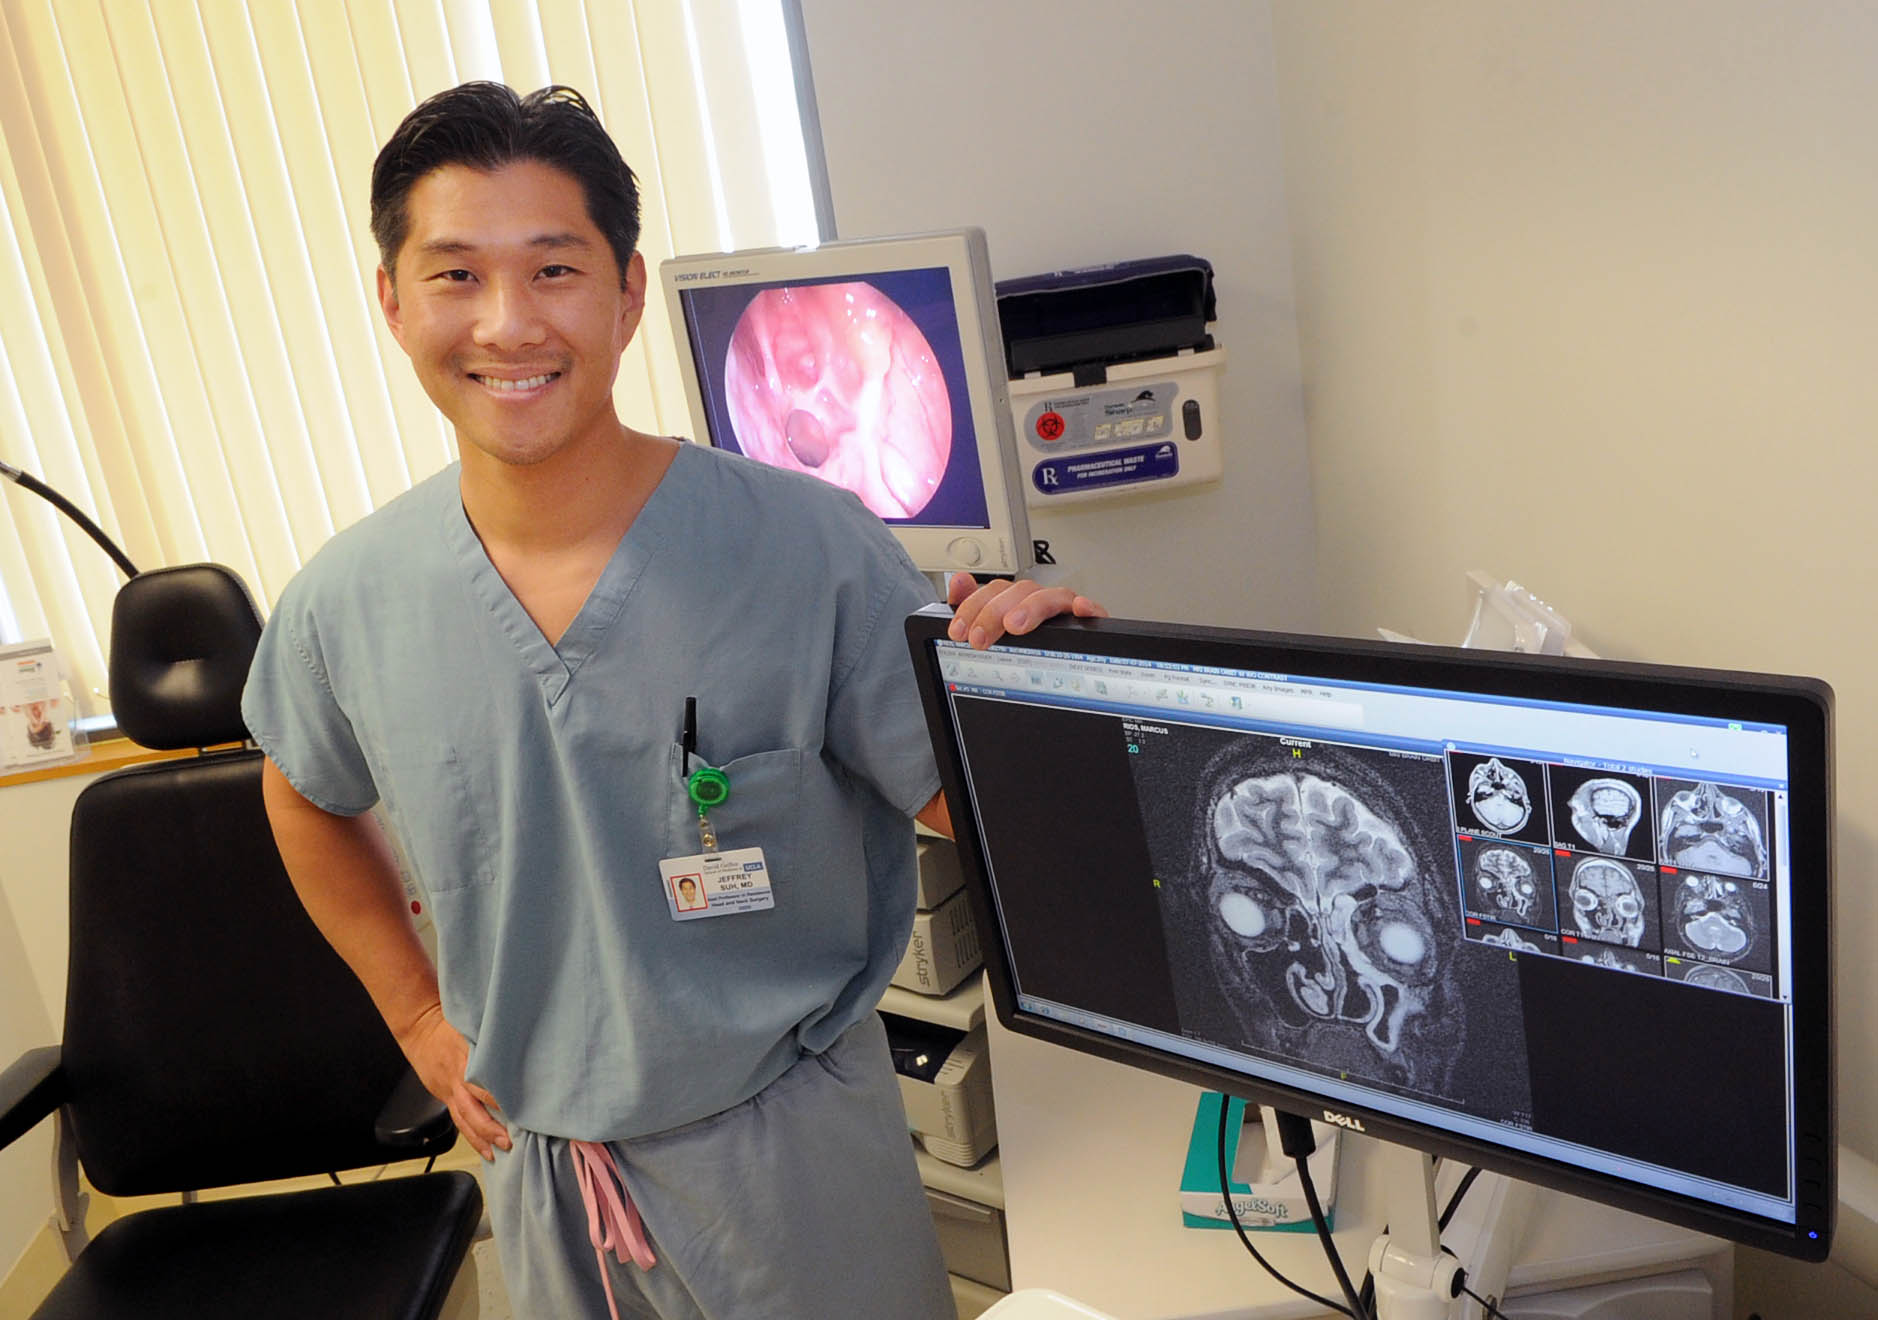 Super Doctor' brings his surgical specialty to UCLA | The